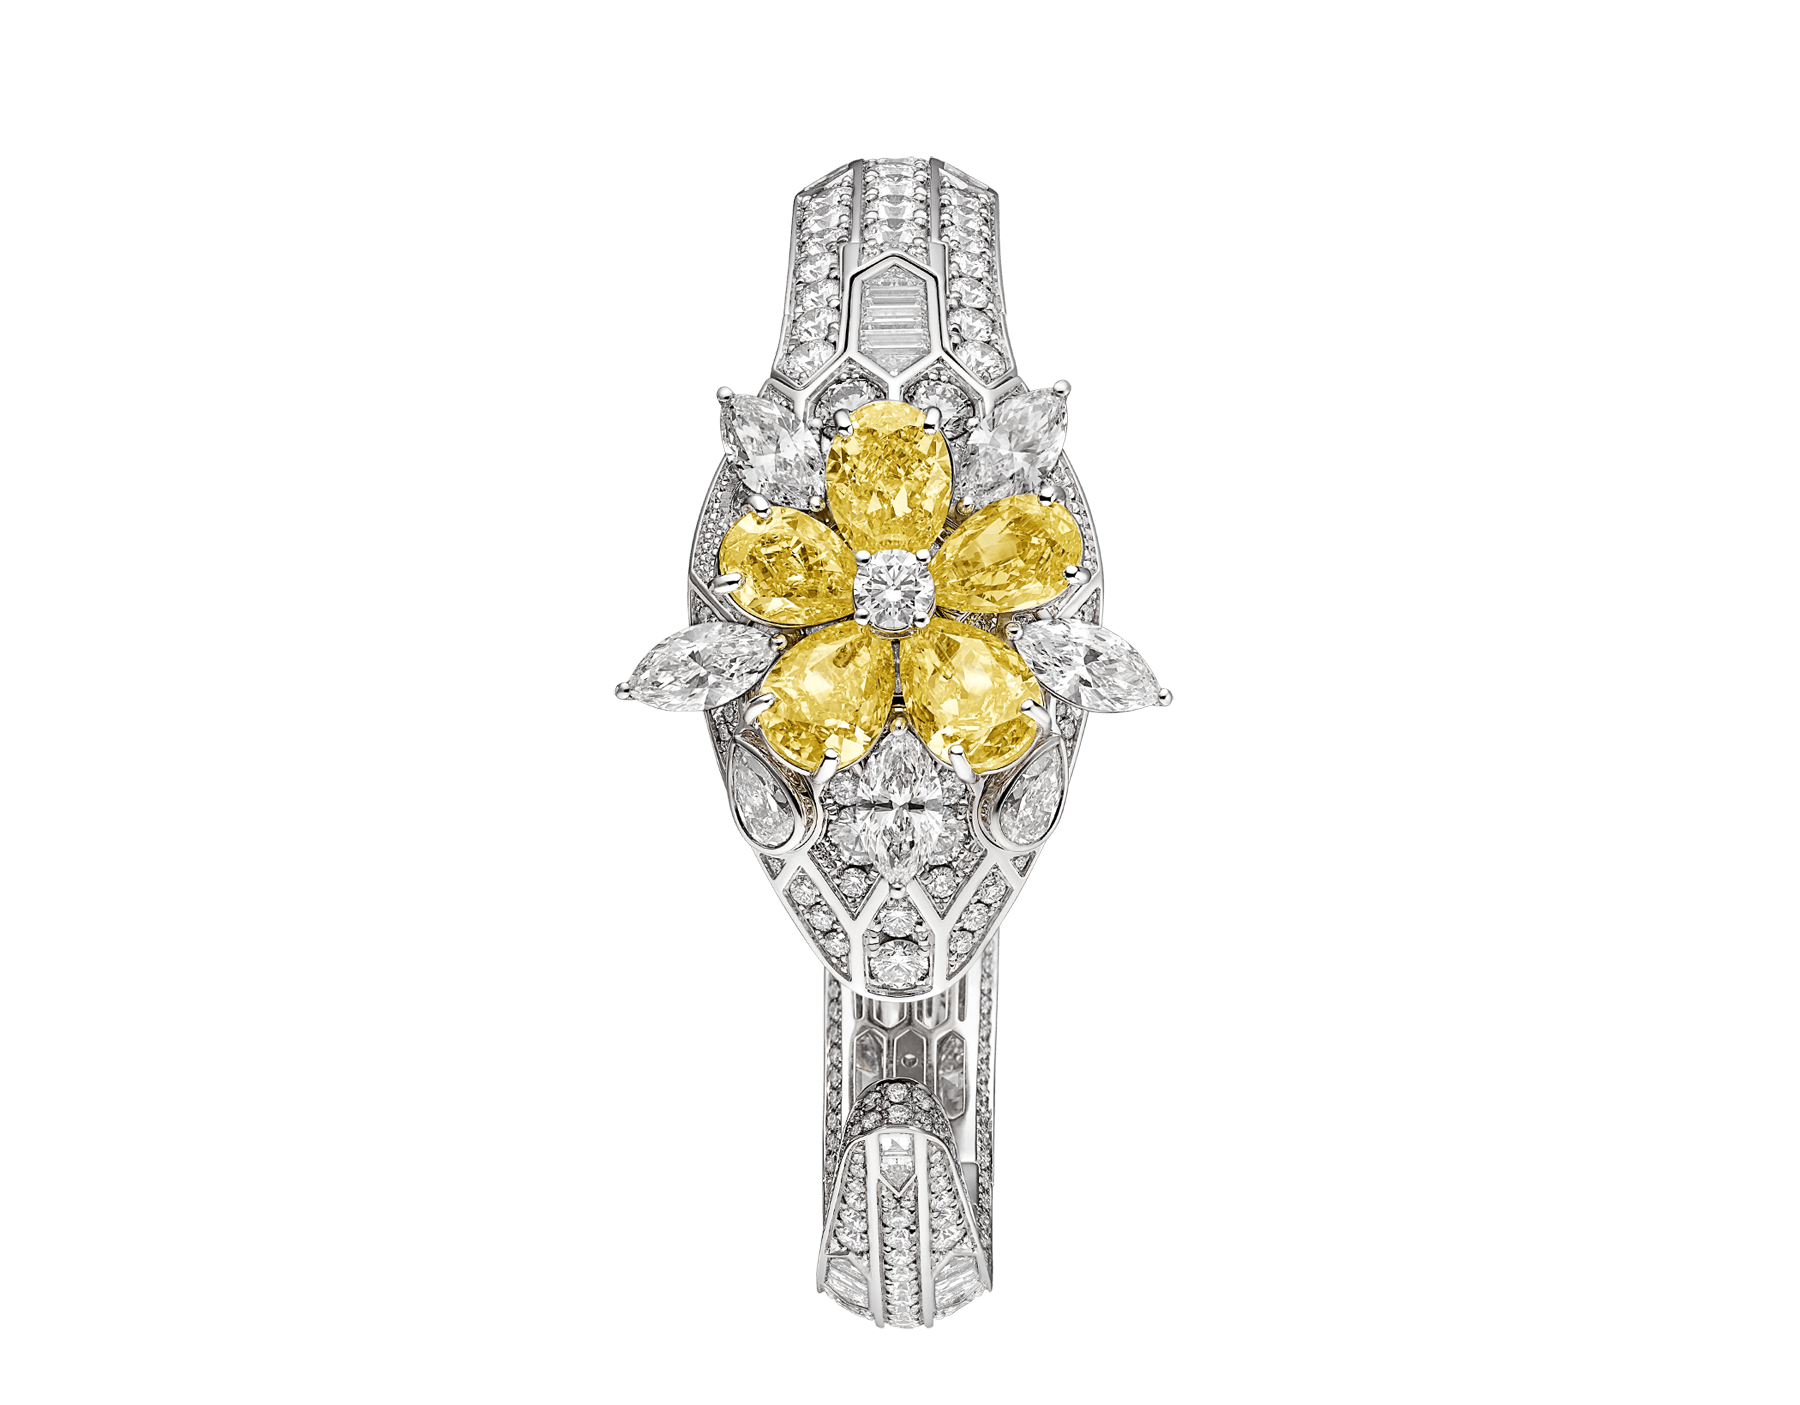 Serpenti Misteriosi Secret Watch with 18 kt white gold head set with brilliant-cut, baguette-cut and marquise-shaped diamonds, pear-shaped yellow diamonds and diamond eyes, 18 kt white gold case, dial and bracelet all set with brilliant-cut diamonds 103036 image 1